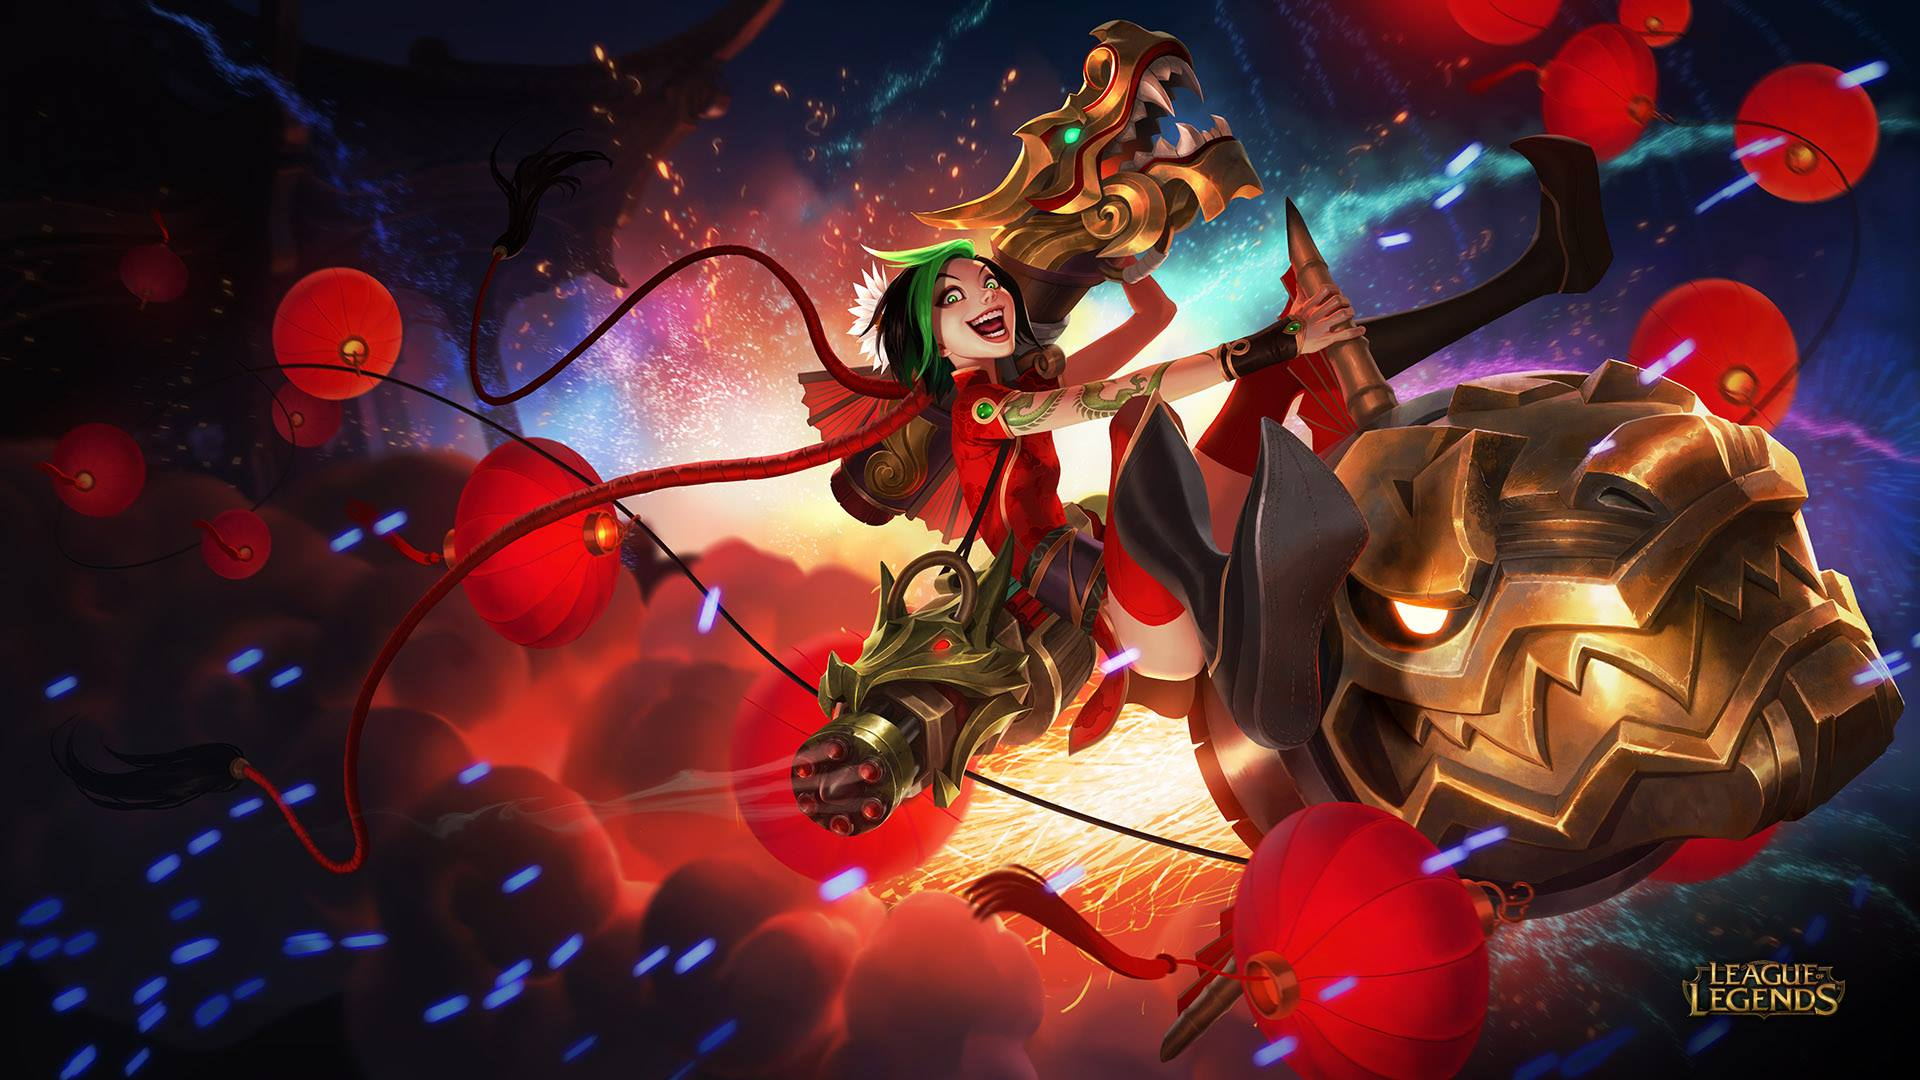 jinx league of legends wallpaper hd 1920×1080 league of legends